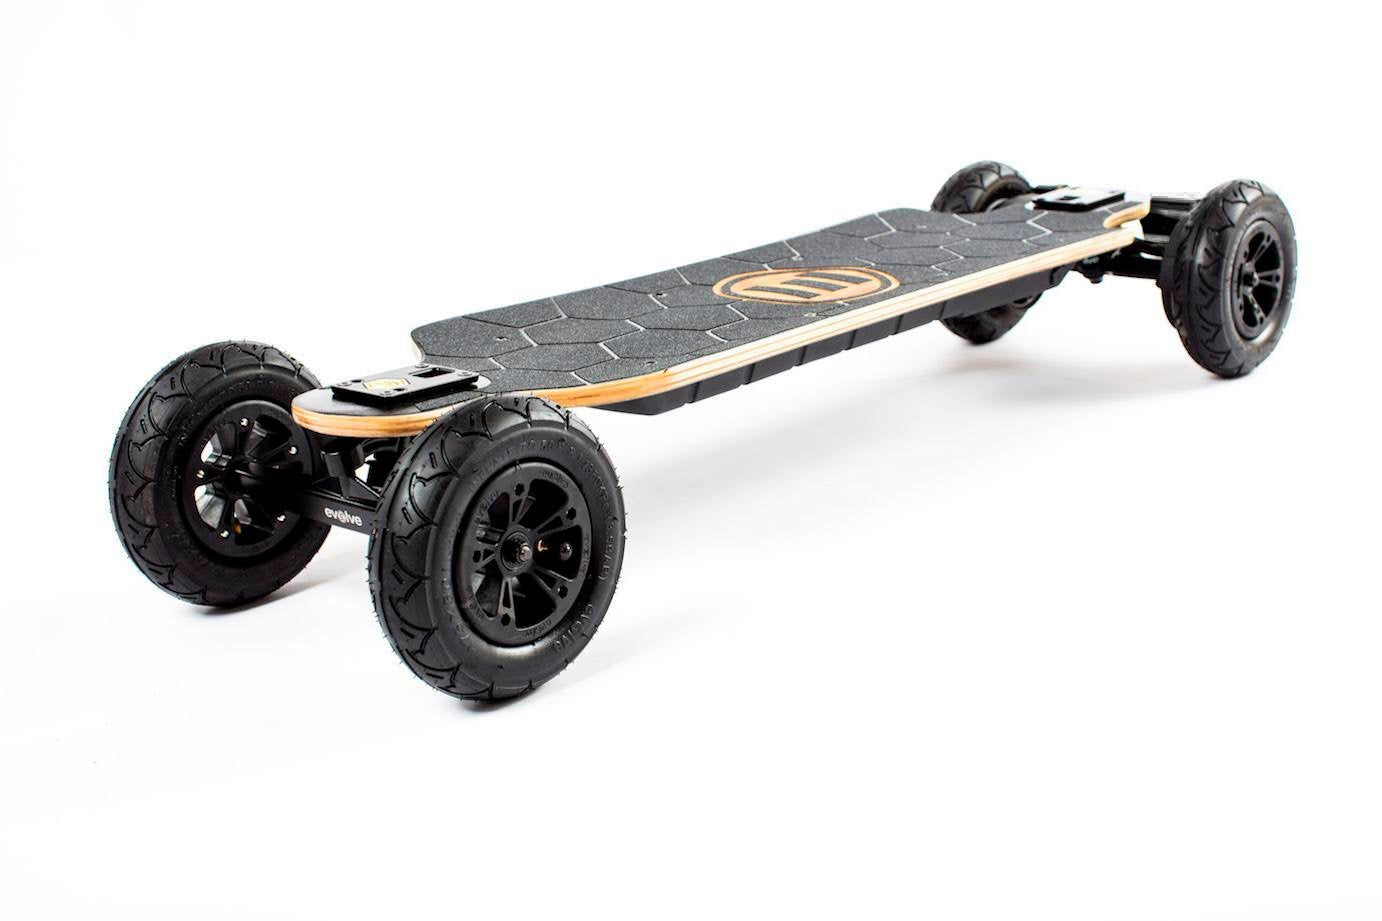 "Evolve GTX Bamboo 7"" All Terrain - £200 OFF with code ""EVOLVE"""